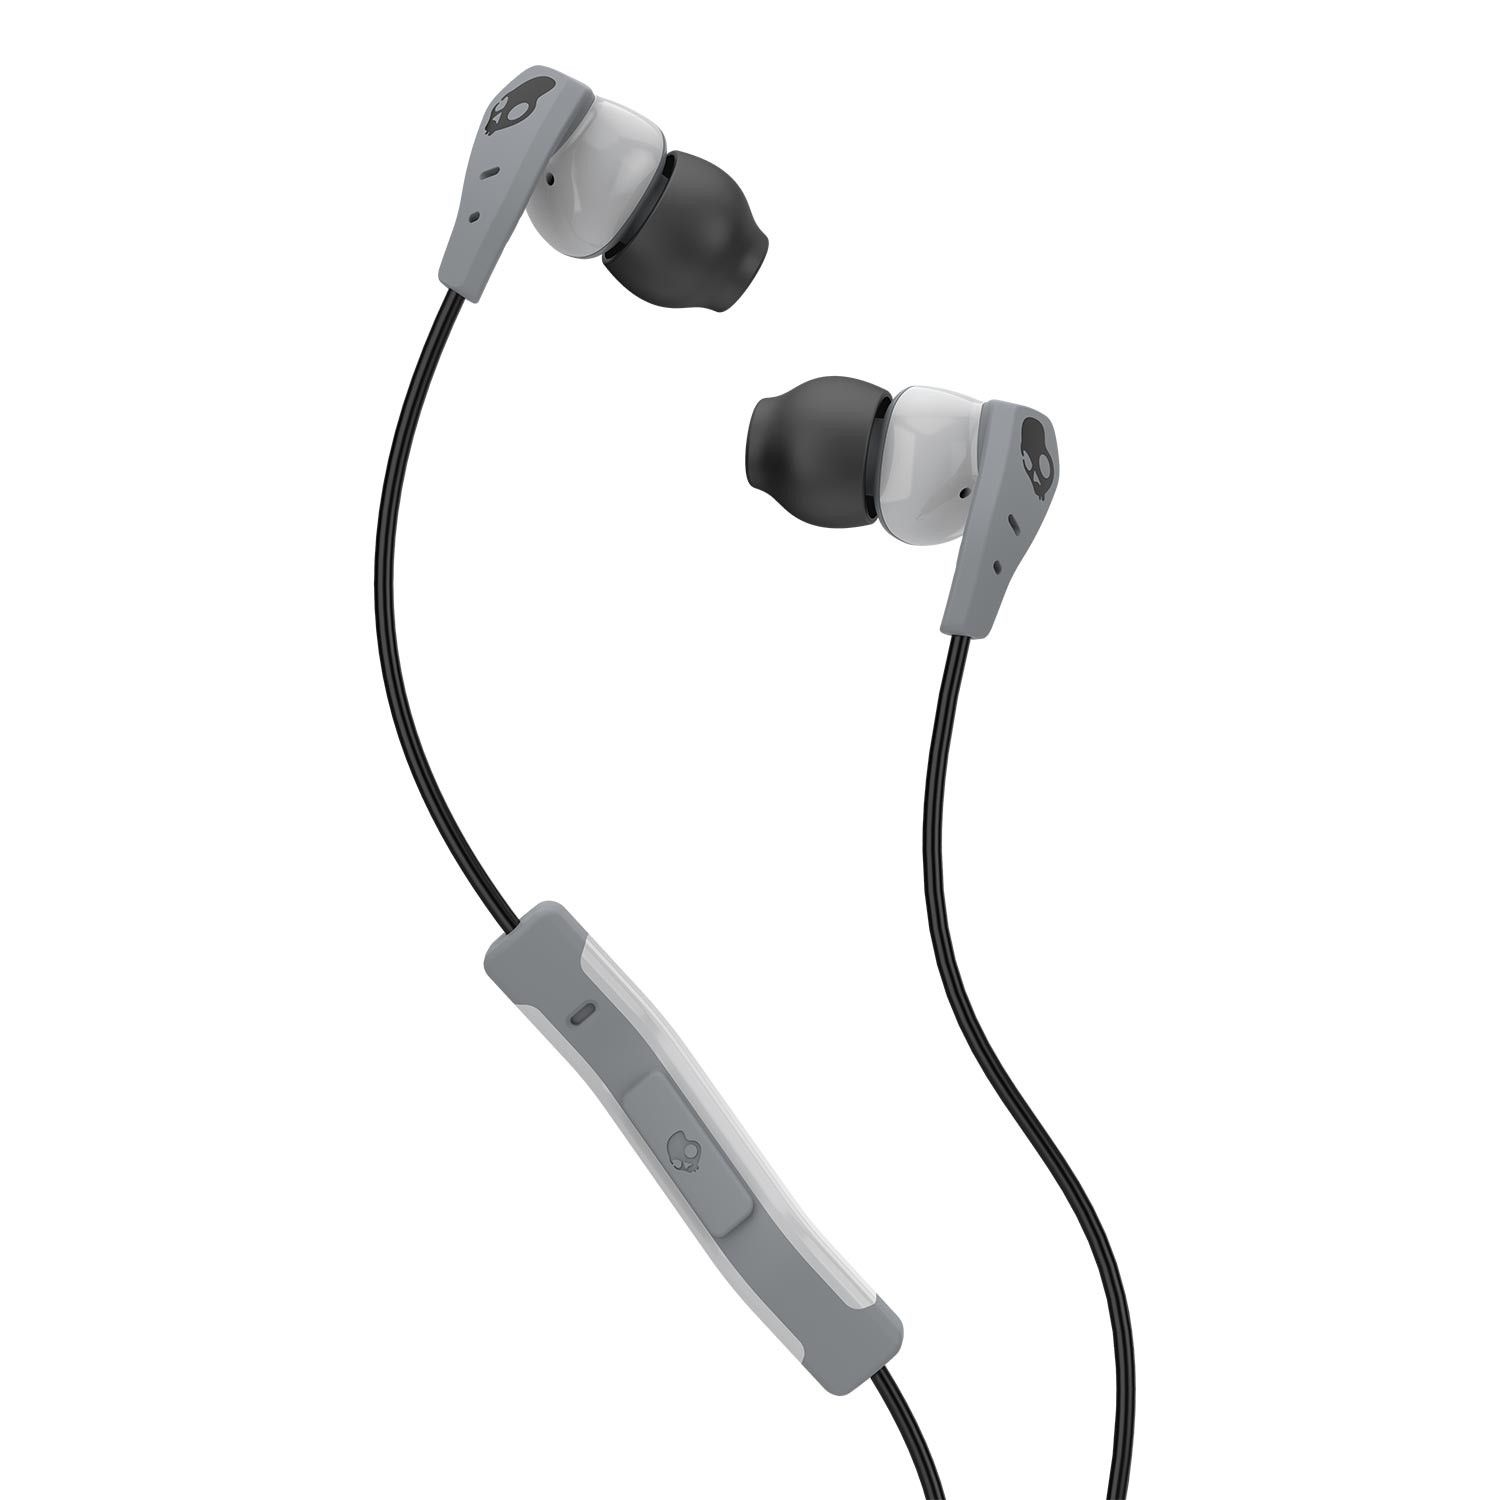 Sluchátka Skullcandy Method grey